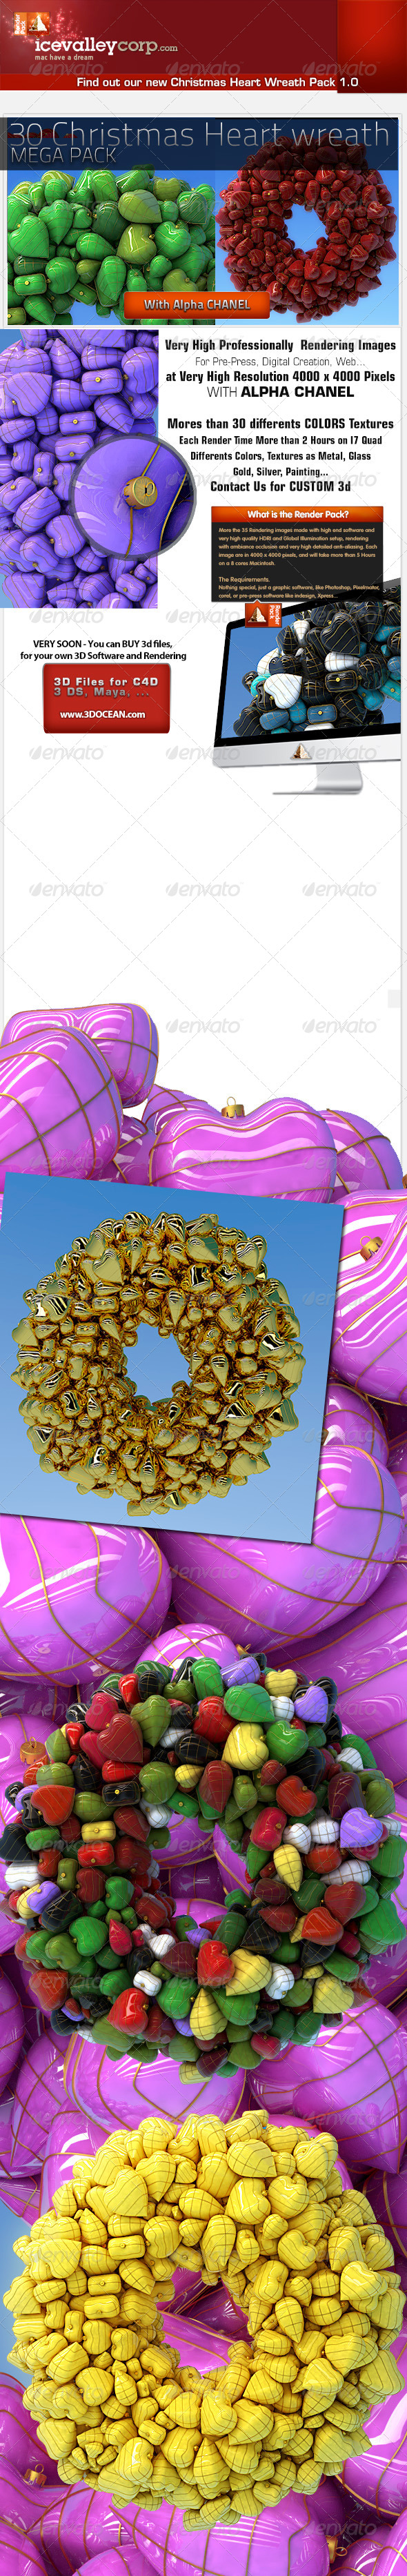 GraphicRiver 35 Christmas Wreath Balls Hires 6165630